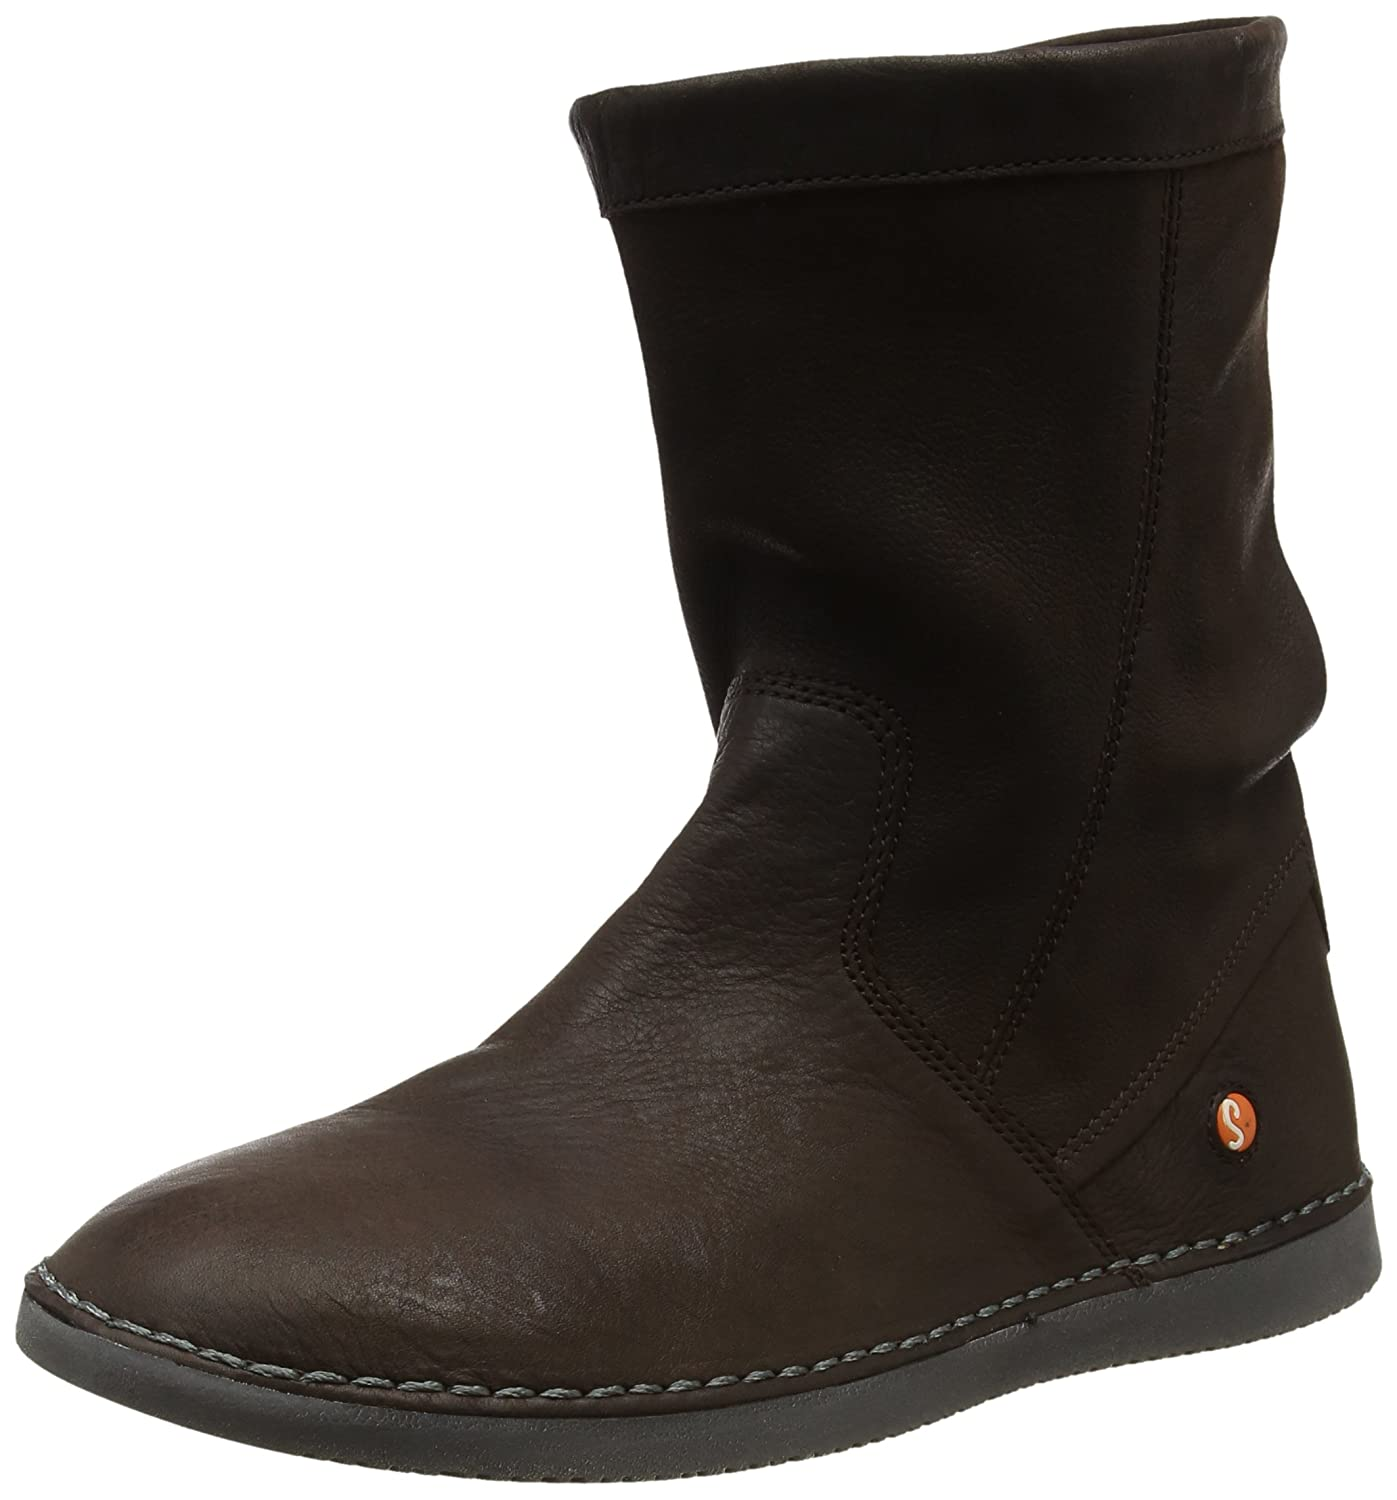 Softinos Til402sof Femme Smooth 009) Leather, Chukka Boots Femme Marron (Dk B01N1EW0CG Brown 009) 2329b7b - shopssong.space